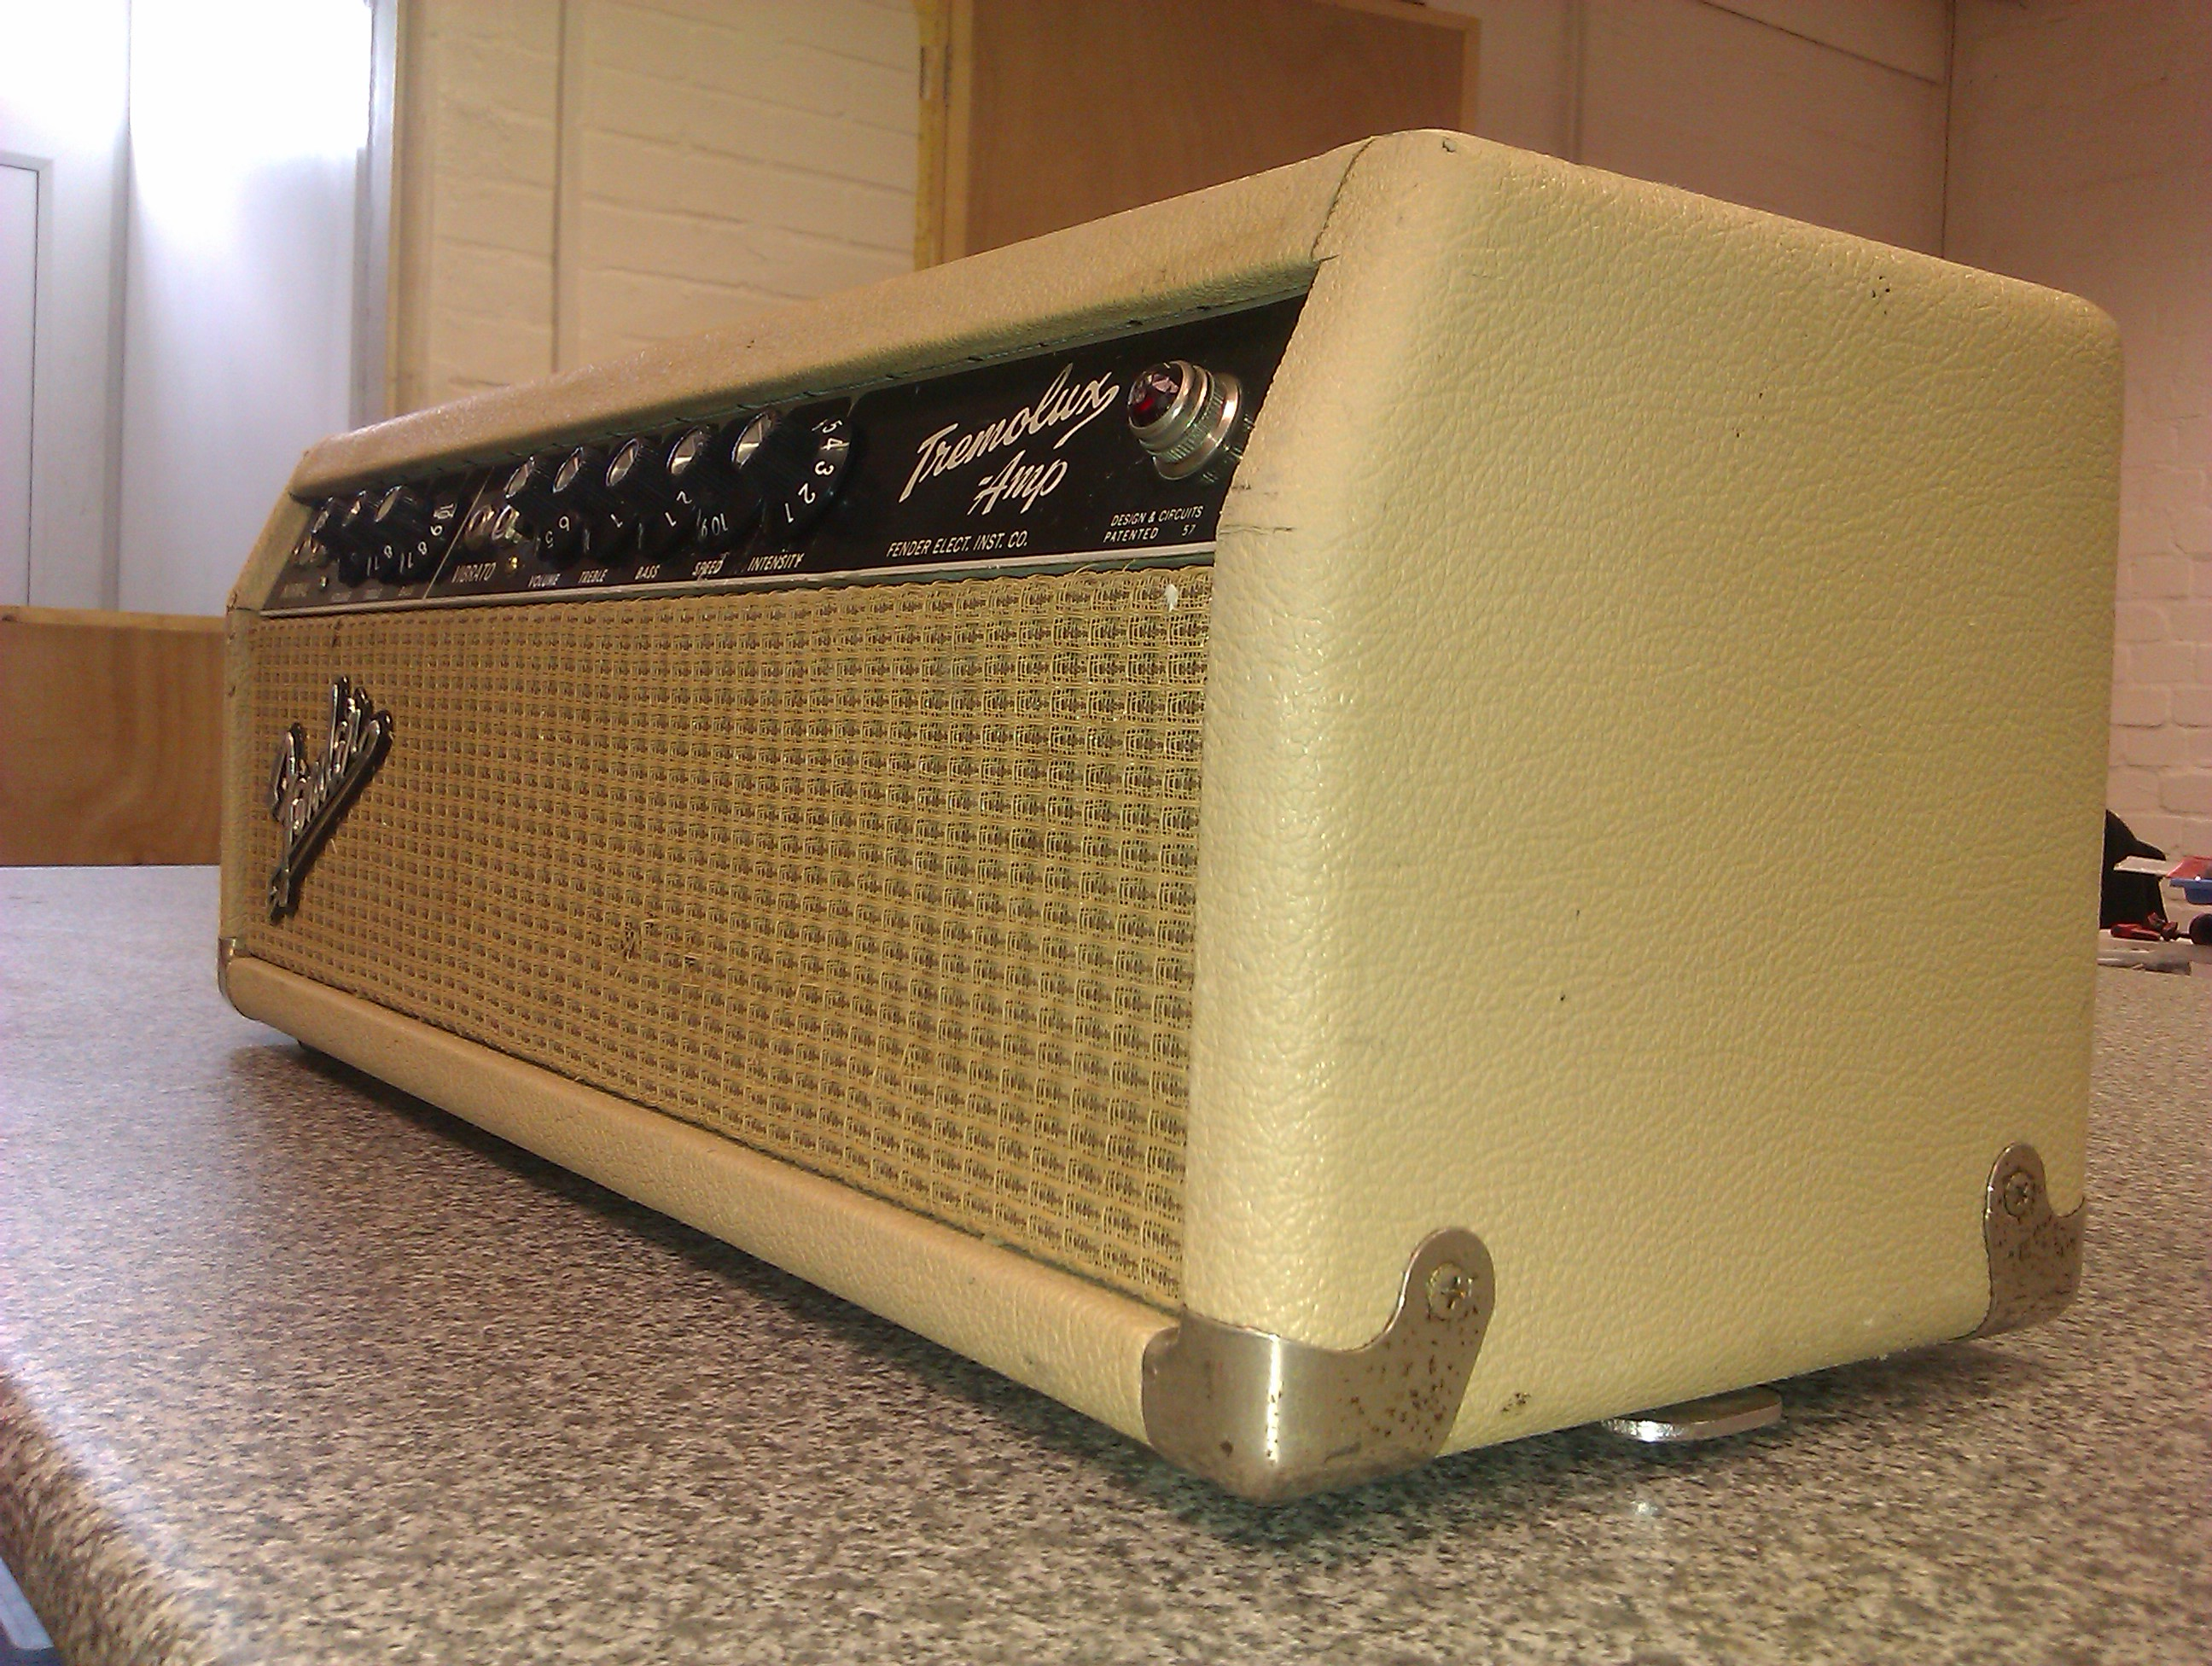 Tone aplenty and serious tremolo vibe from this superb vintage valve amp